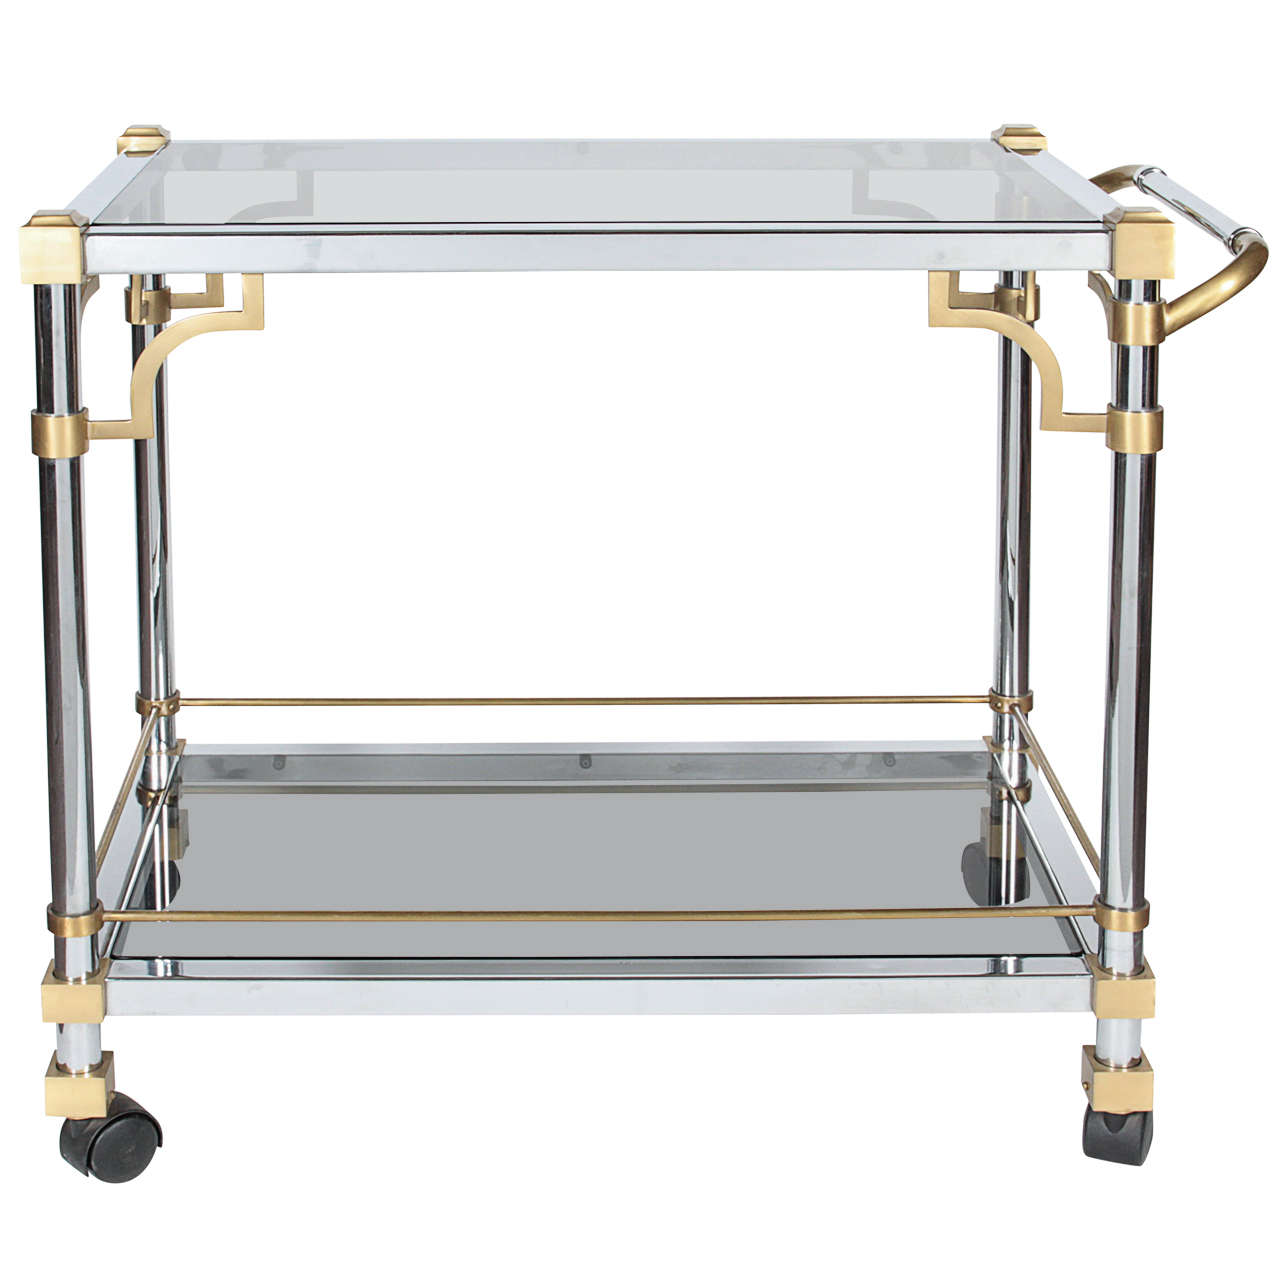 Tone Rolling Bar Cart Attrib To Maison Jansen Is No Longer Available